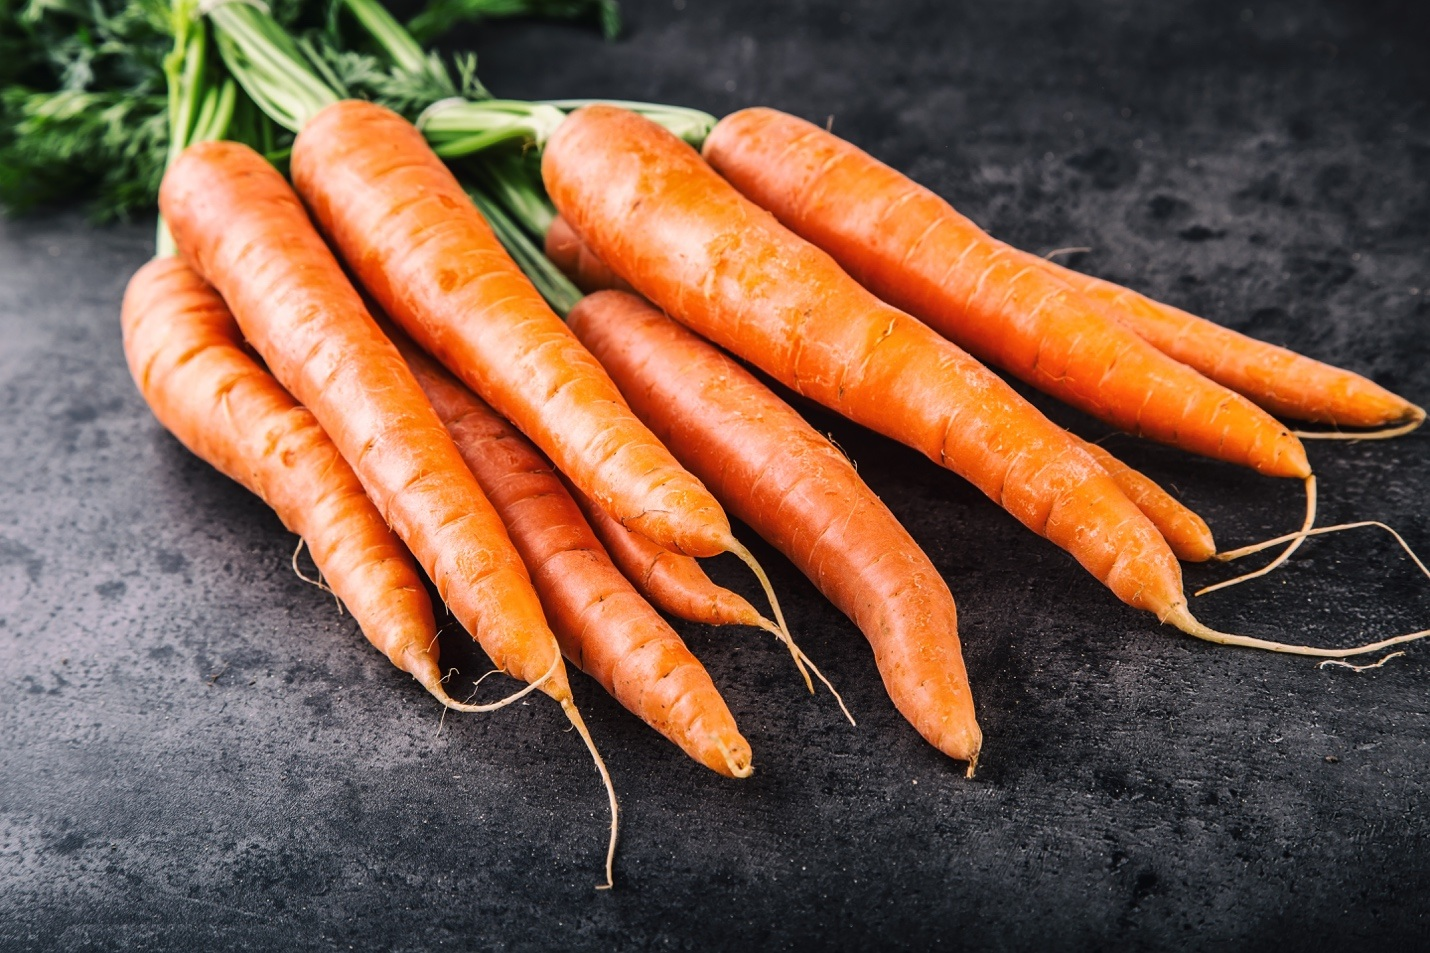 carrots - Top 20 Natural Foods To Help You Manage Your Diabetes Effectively